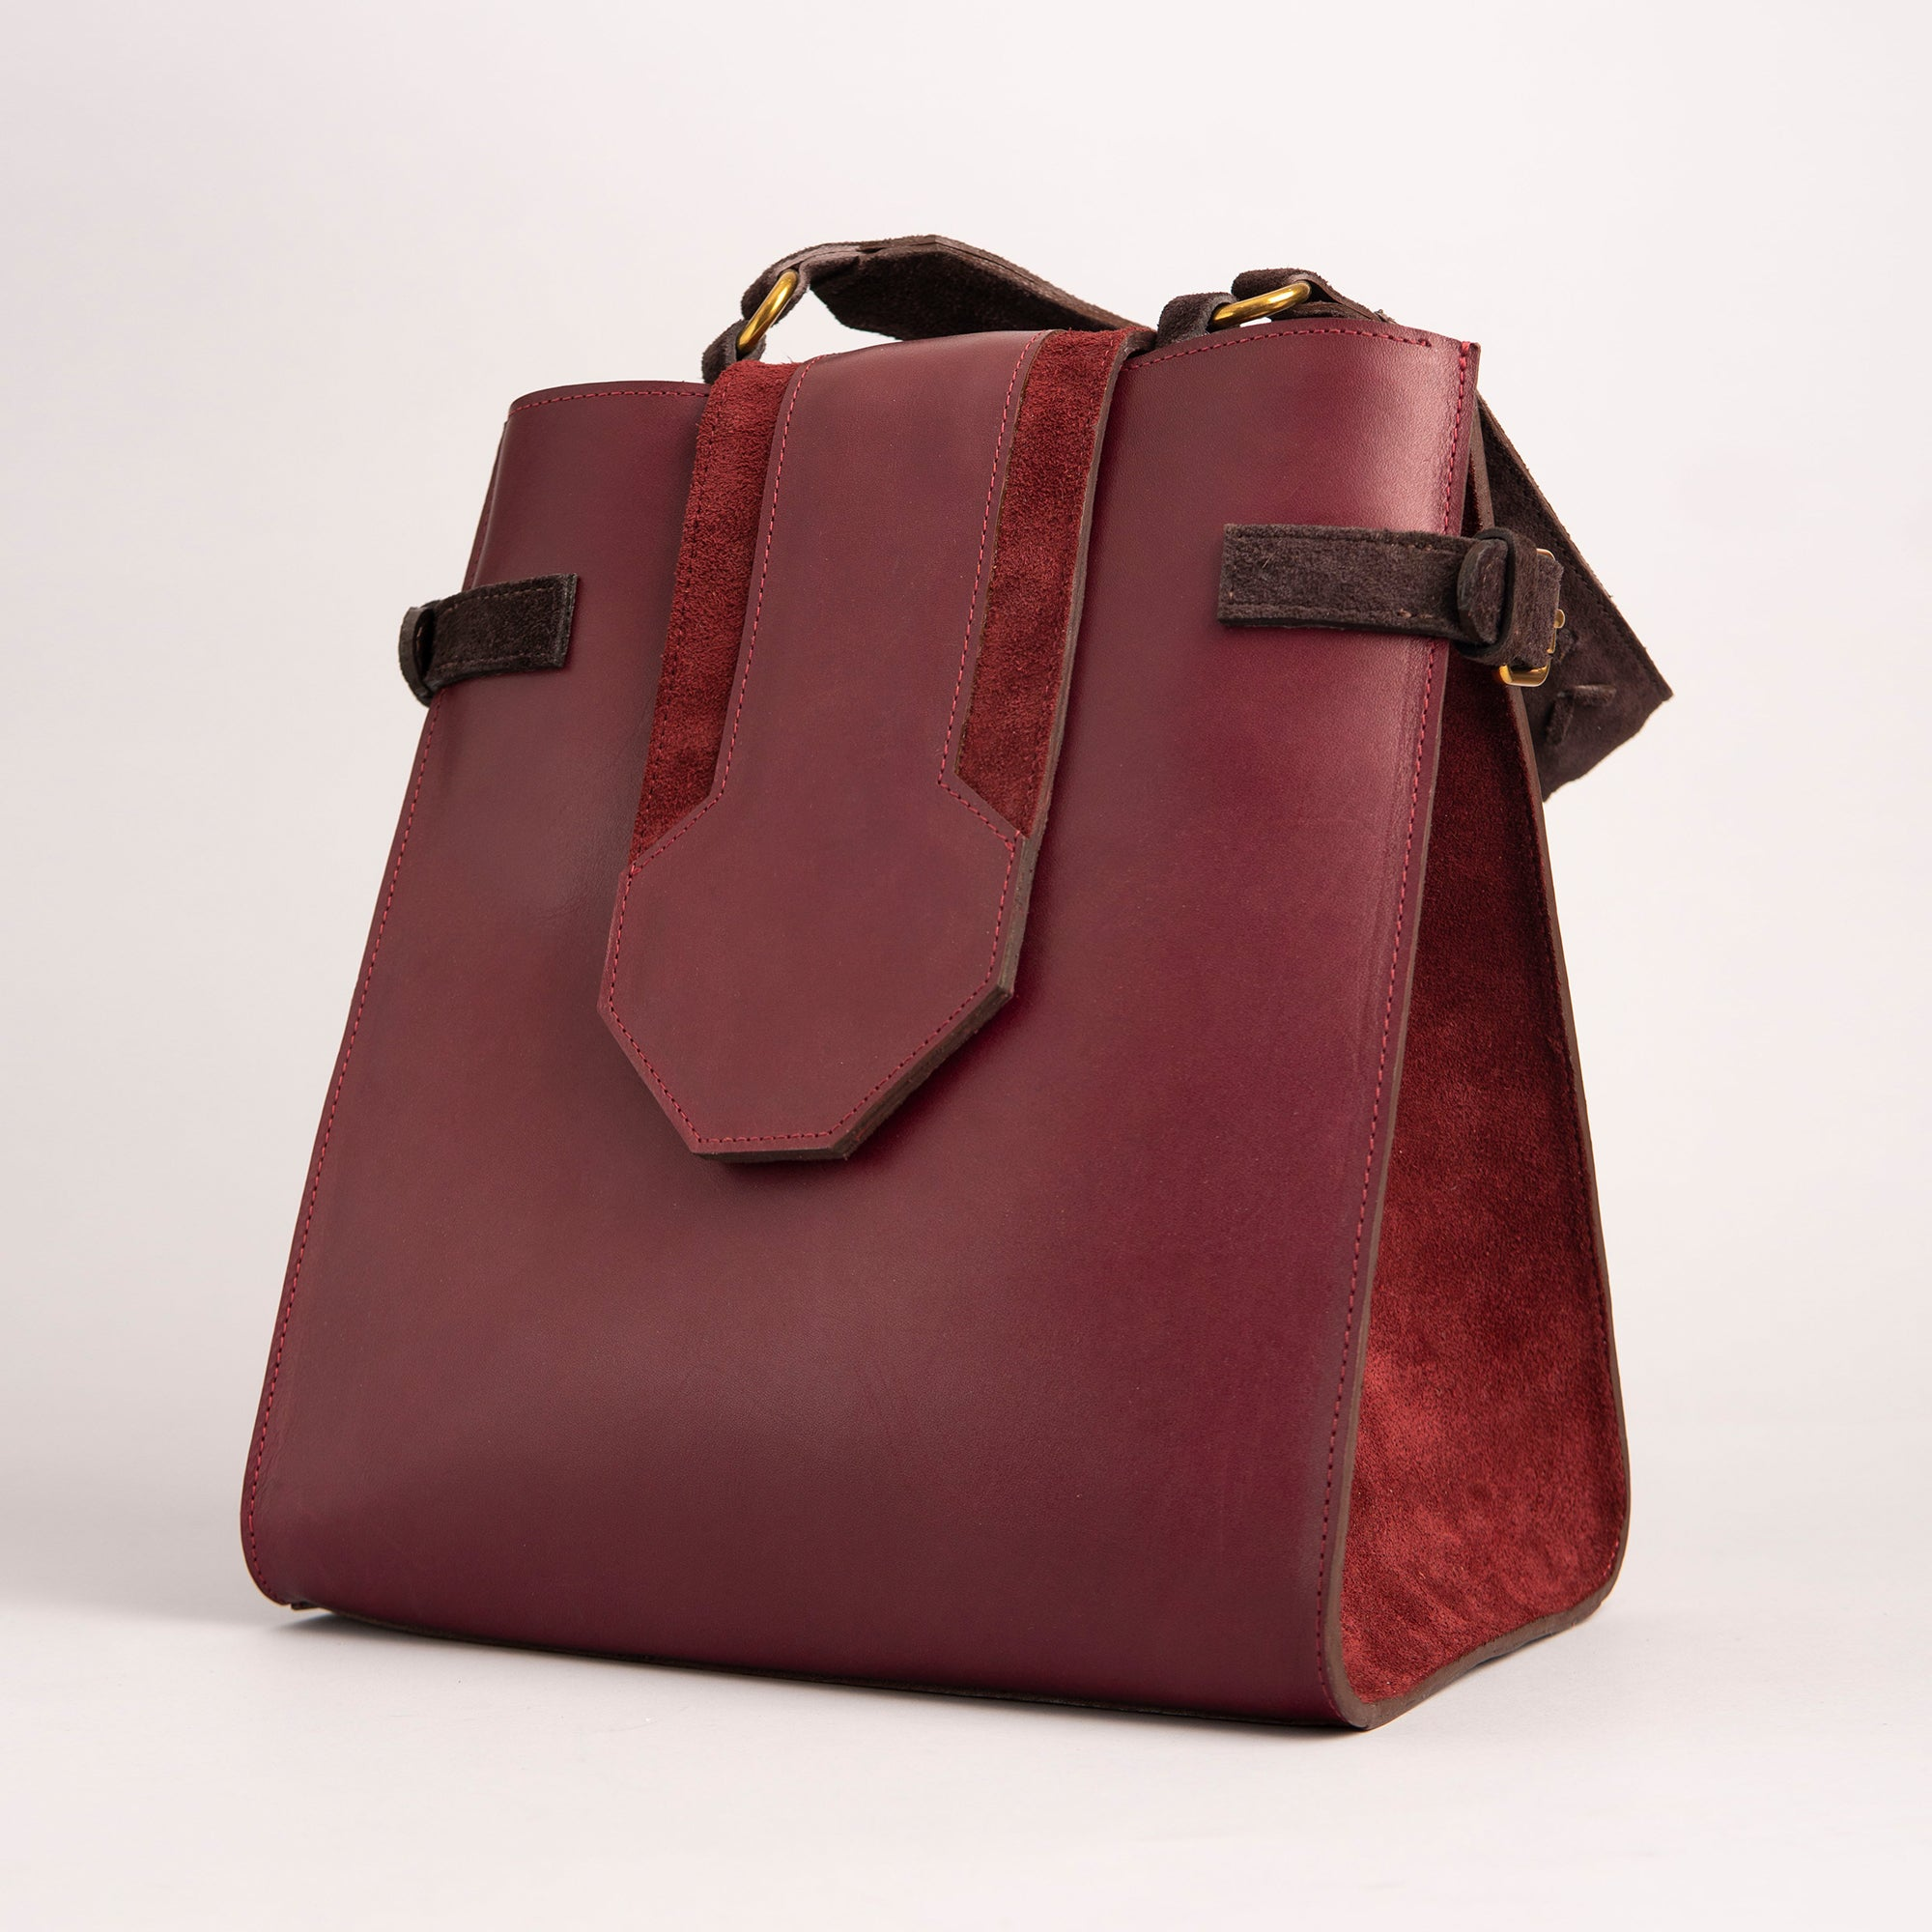 Nelly Handbag, Burgundy